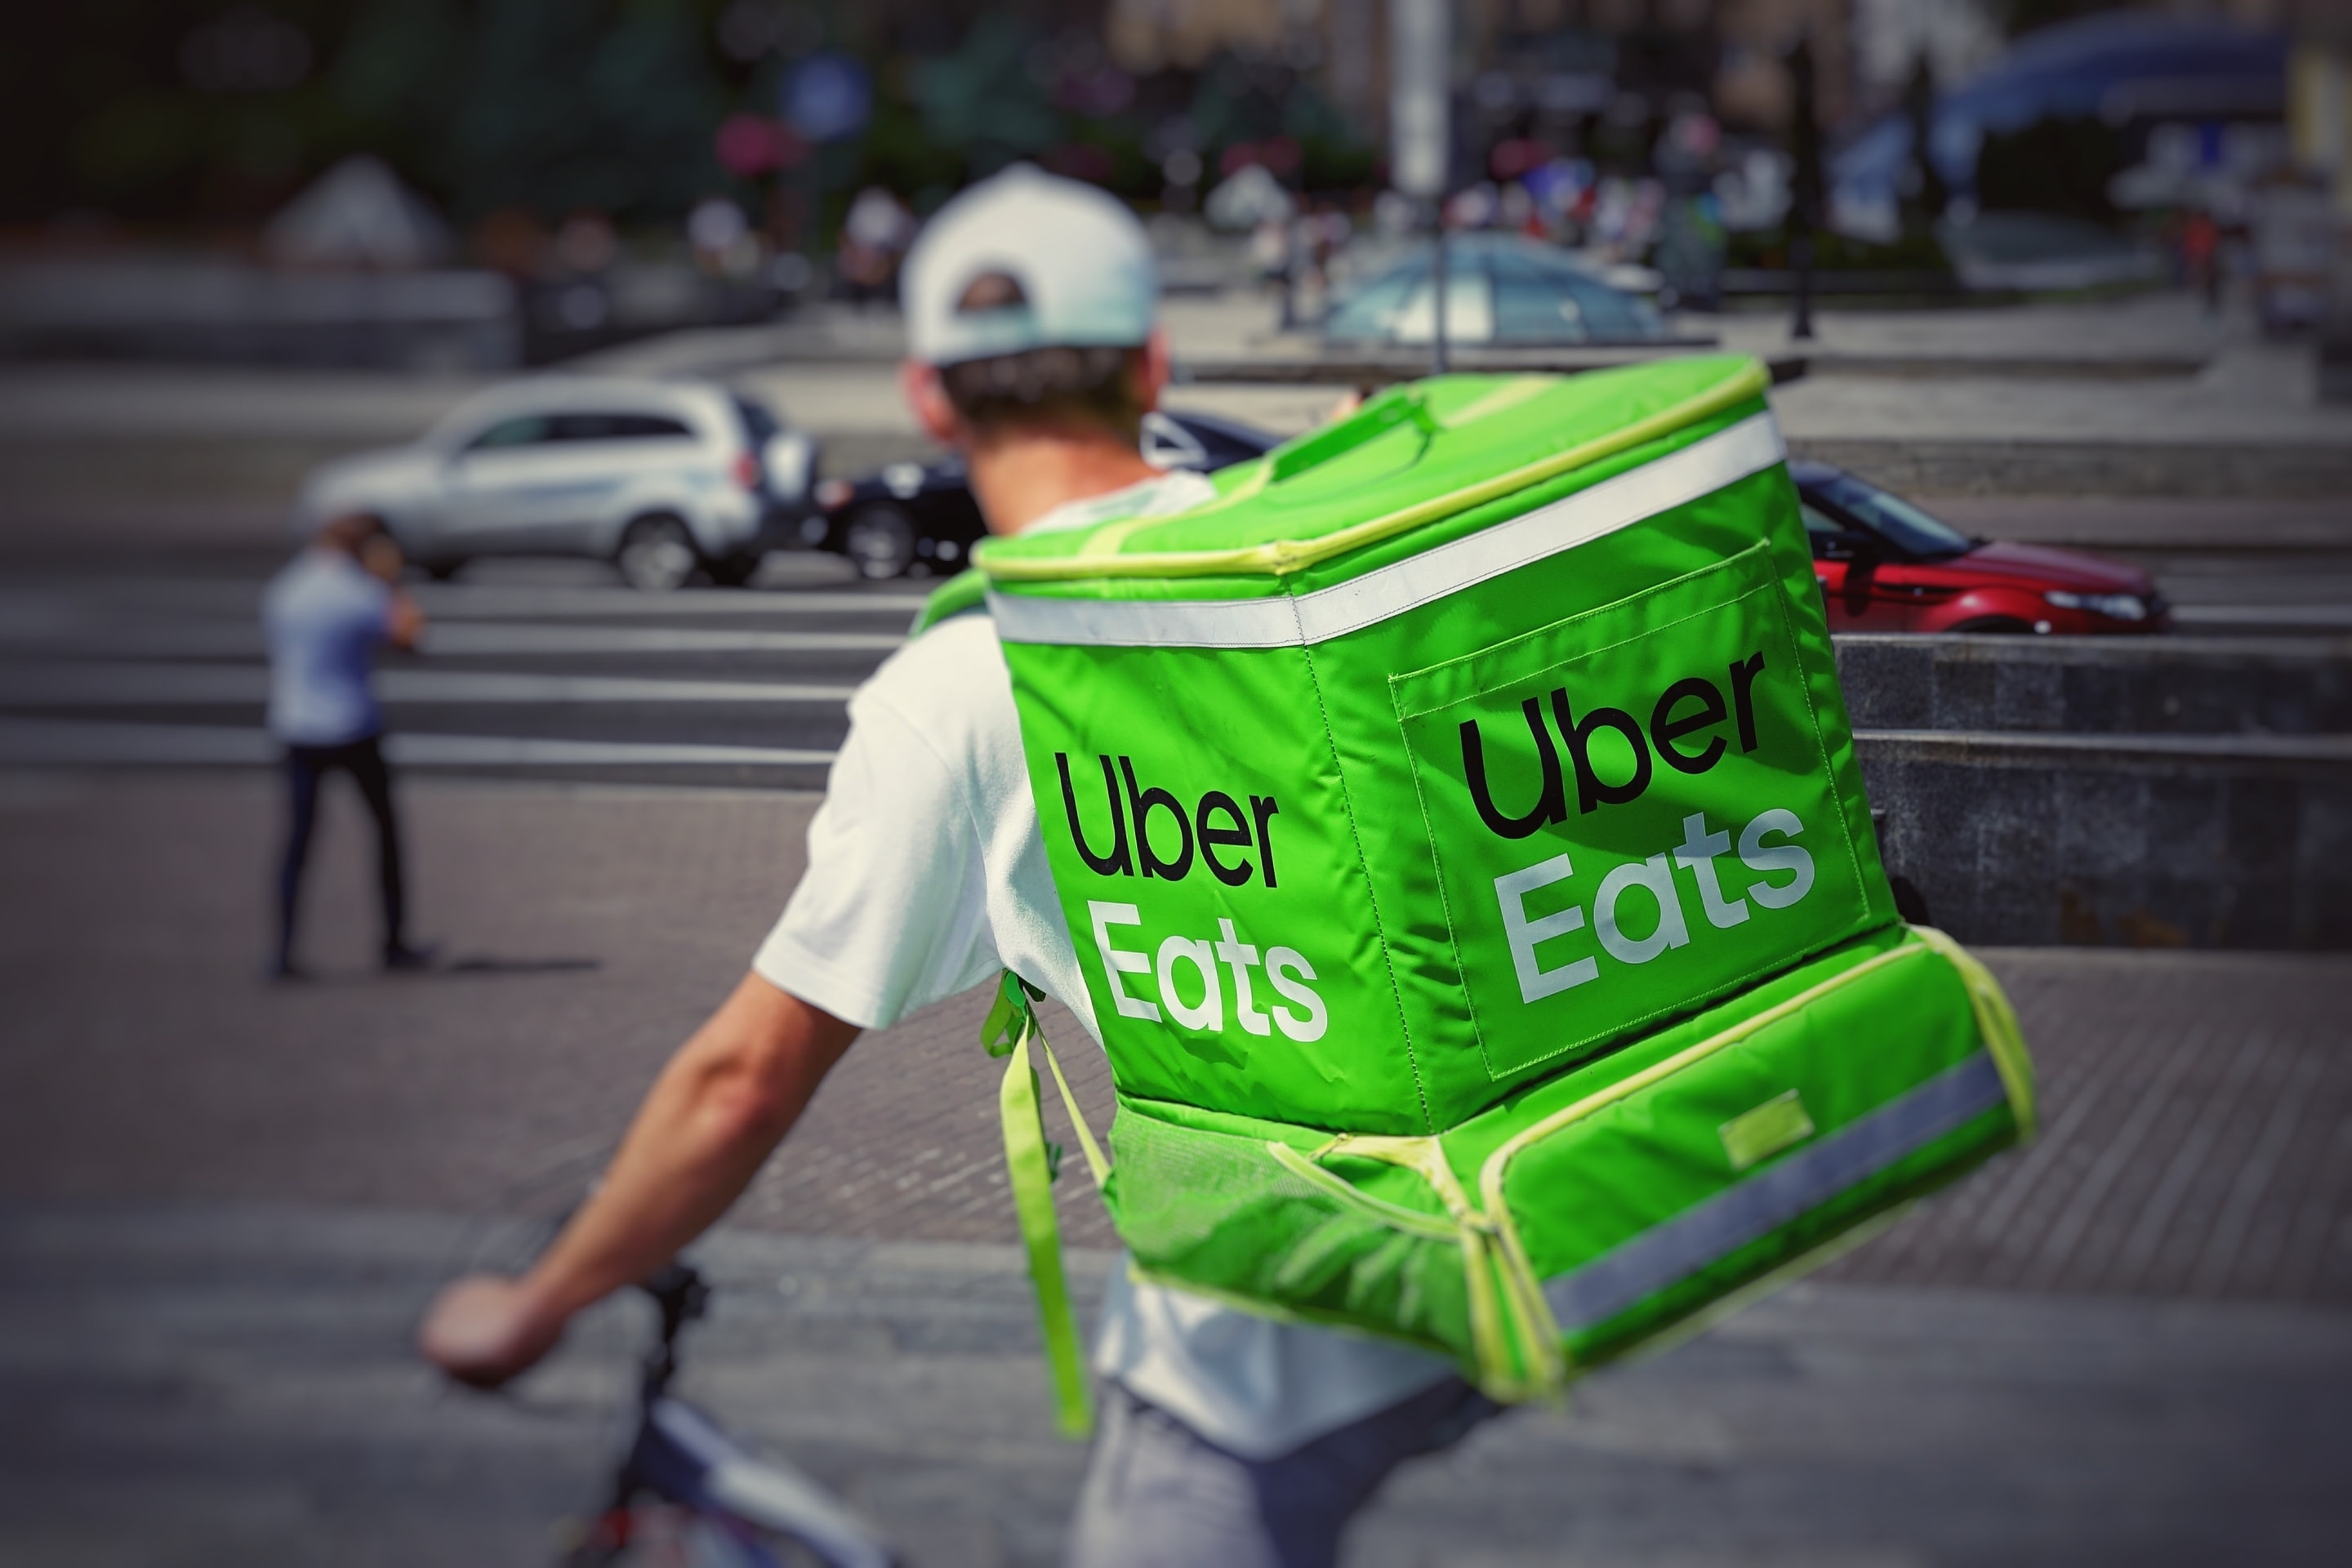 An UberEats delivery guy.